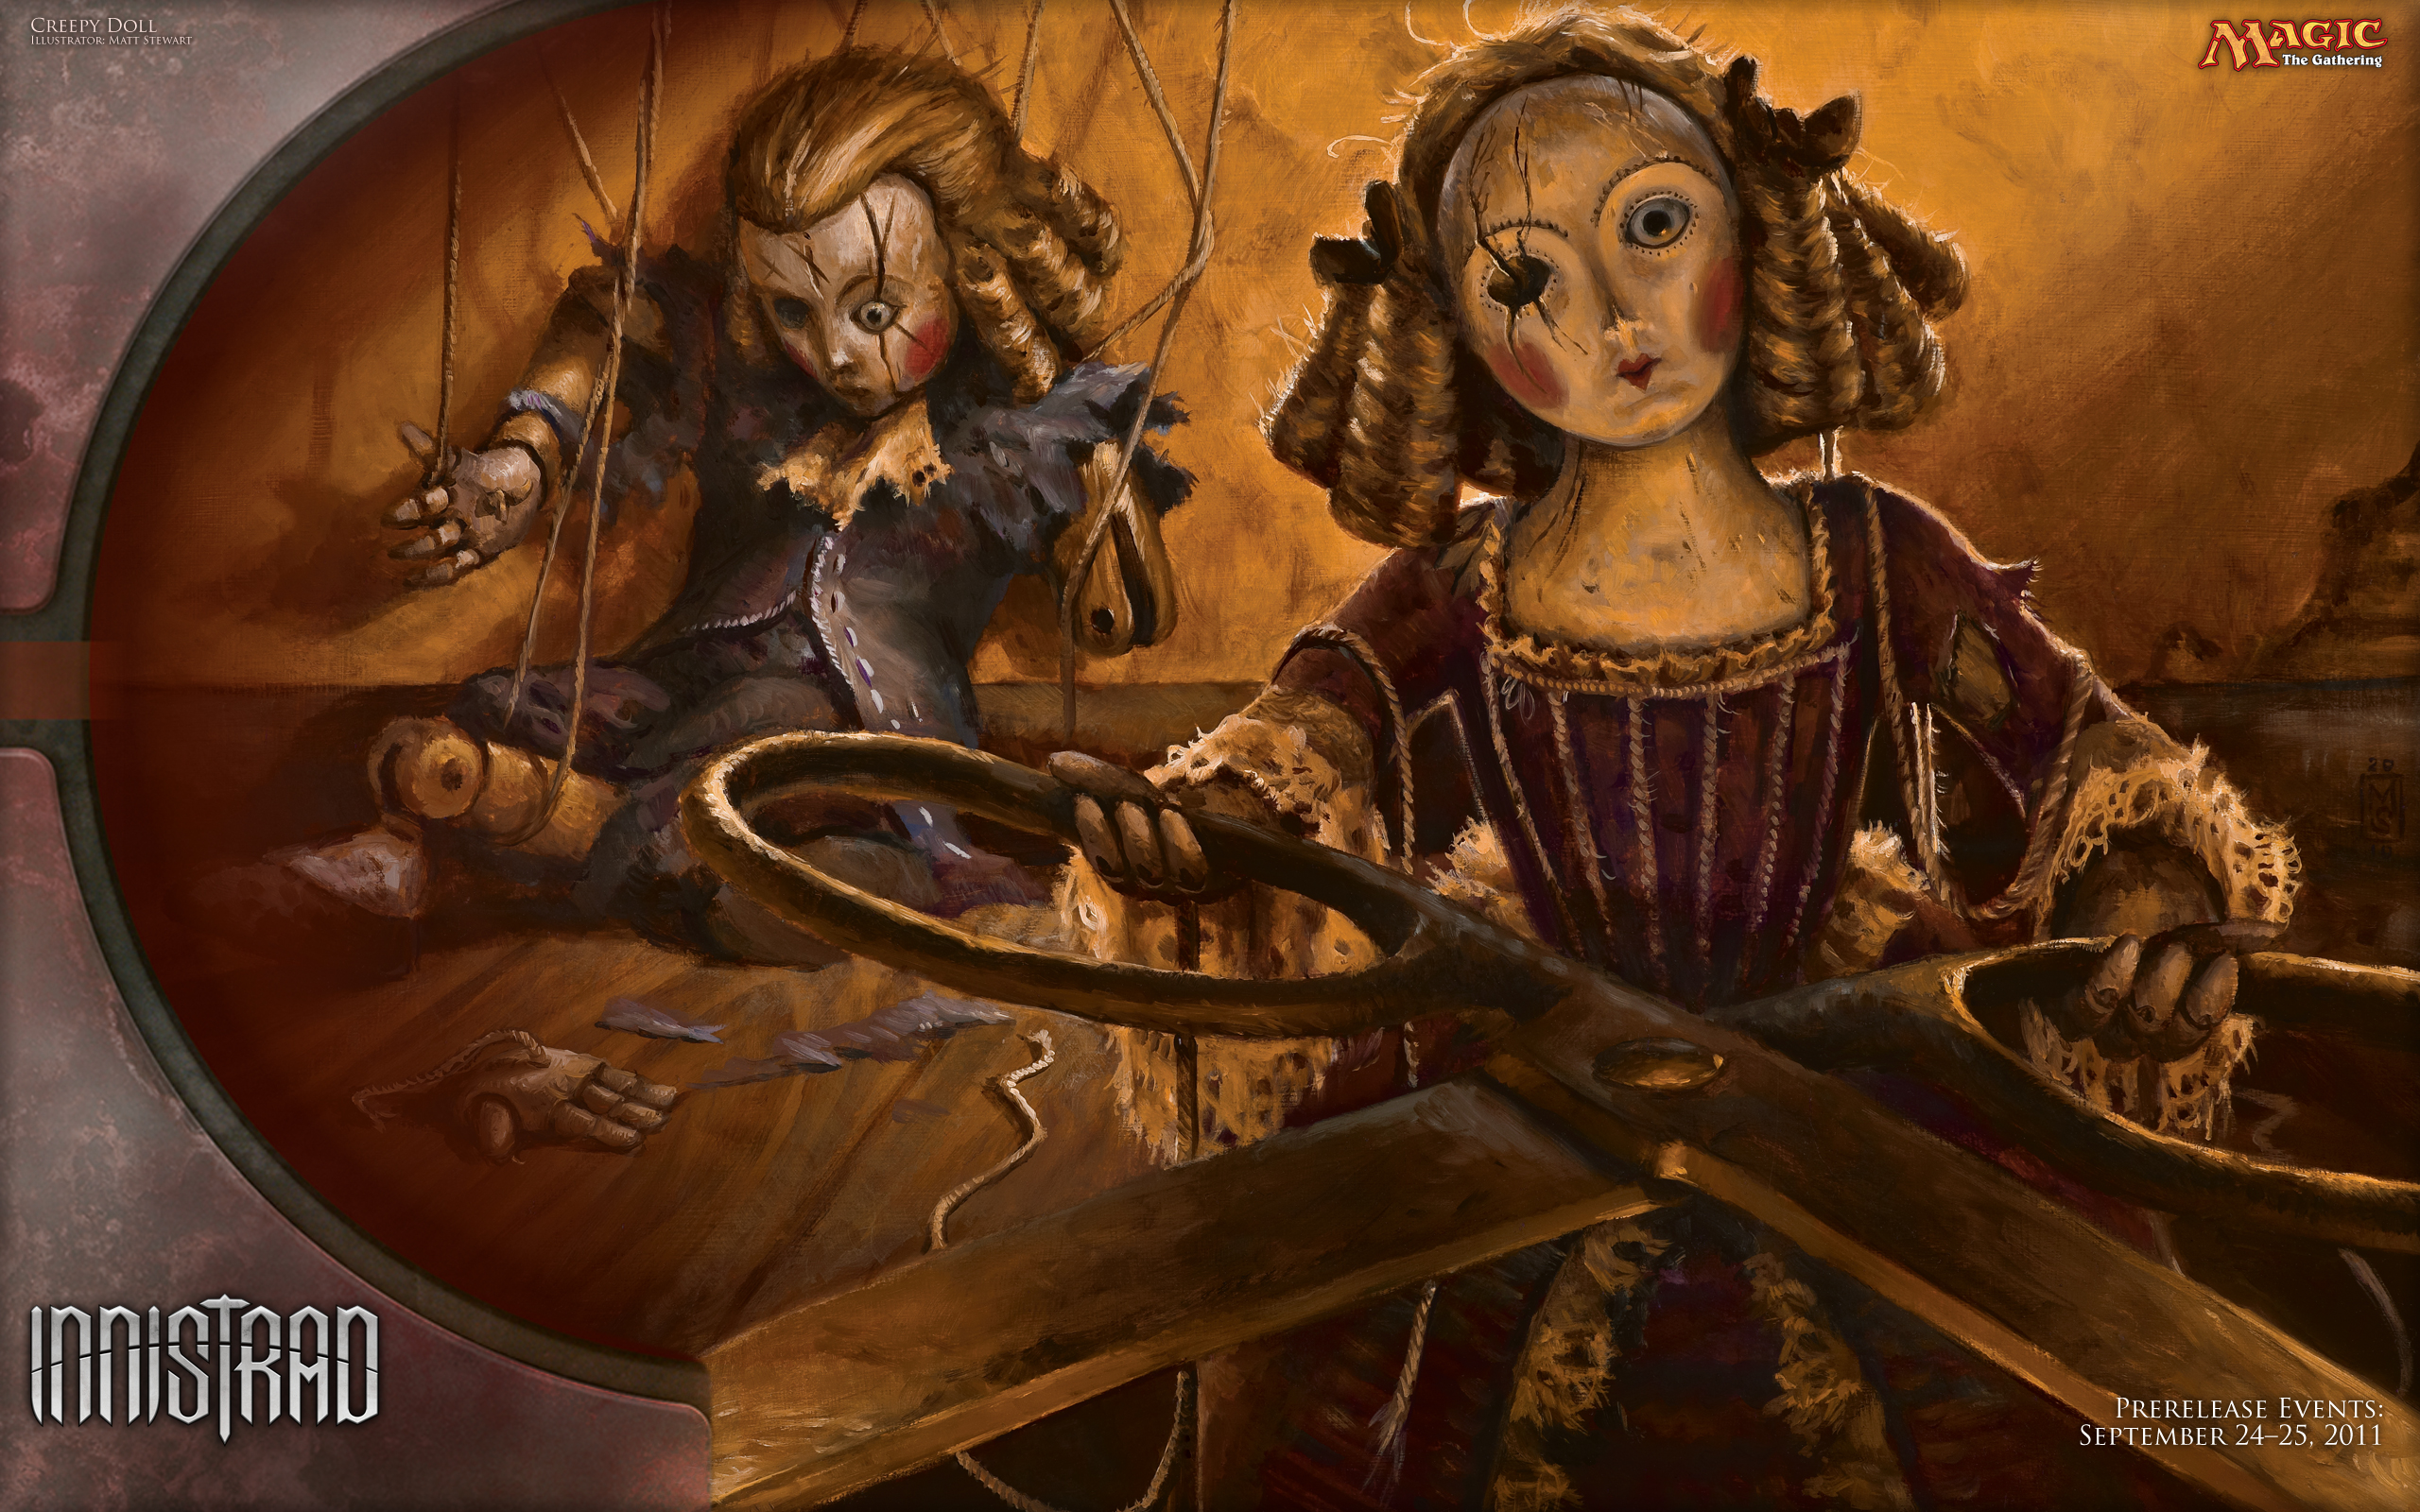 Wallpaper of the week creepy doll magic the gathering - Innistrad wallpaper ...